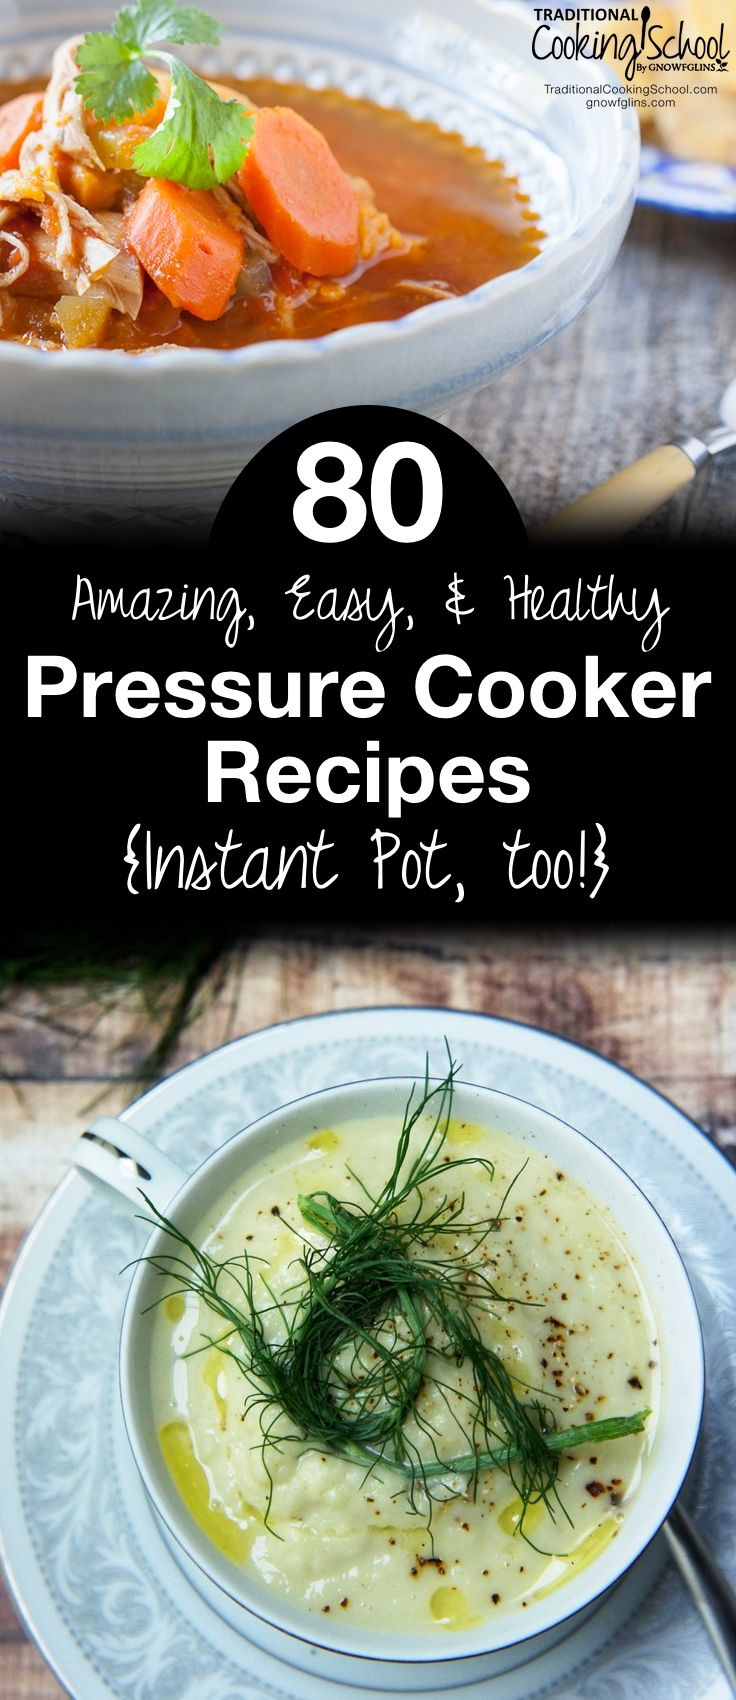 17 best images about instant pot on pinterest hams for Best instant pot pressure cooker recipes